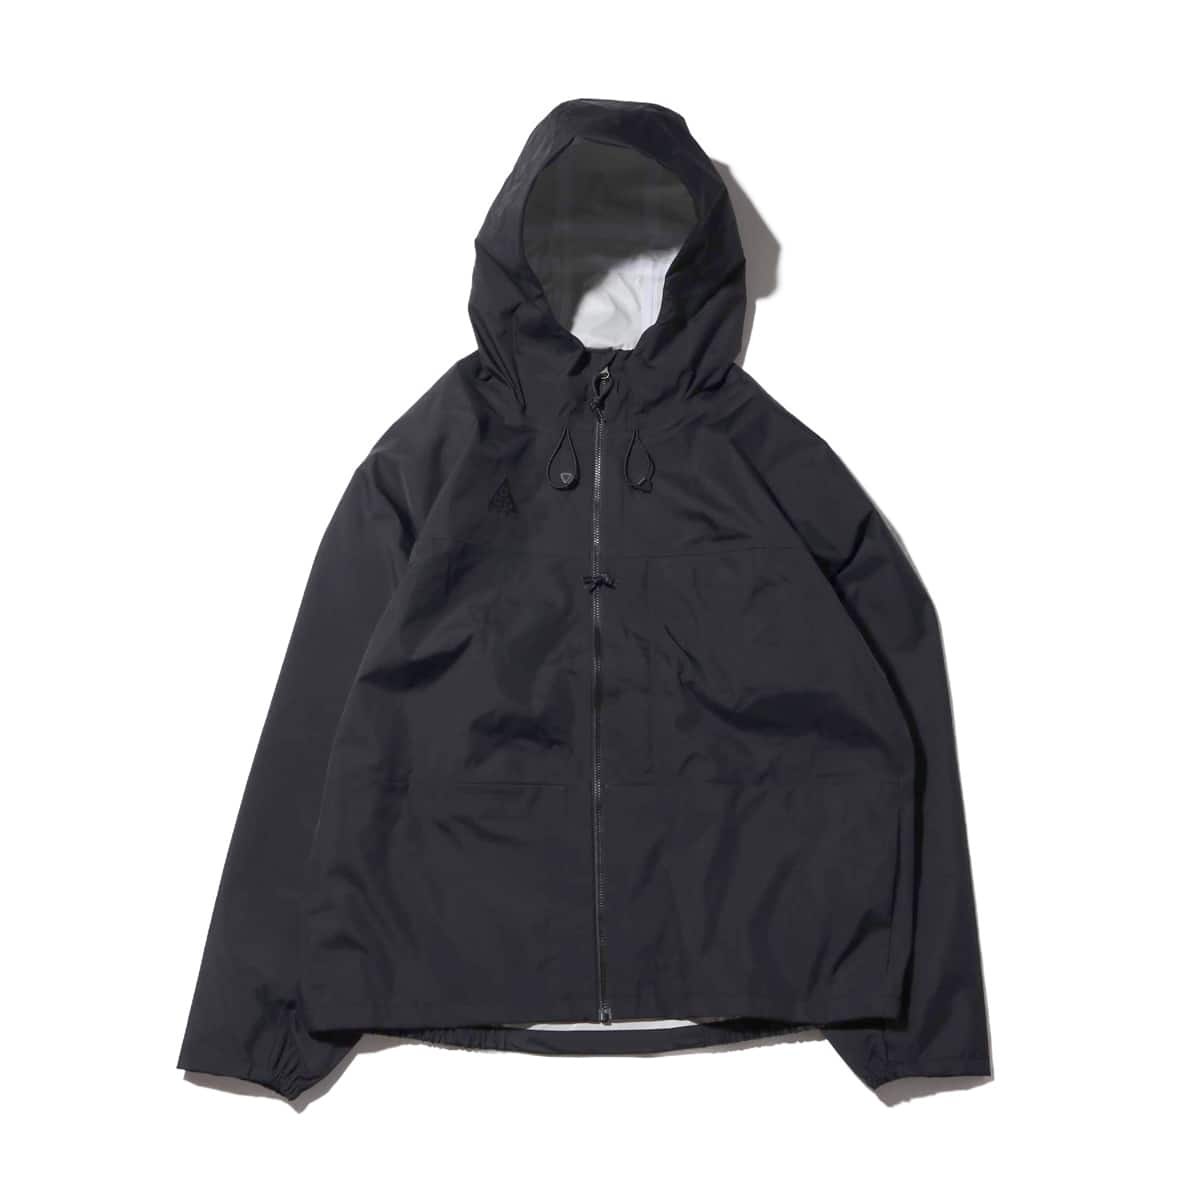 NIKE AS M ACG 2.5L PCK JKT BLACK/ANTHRACITE 19FA-S_photo_large